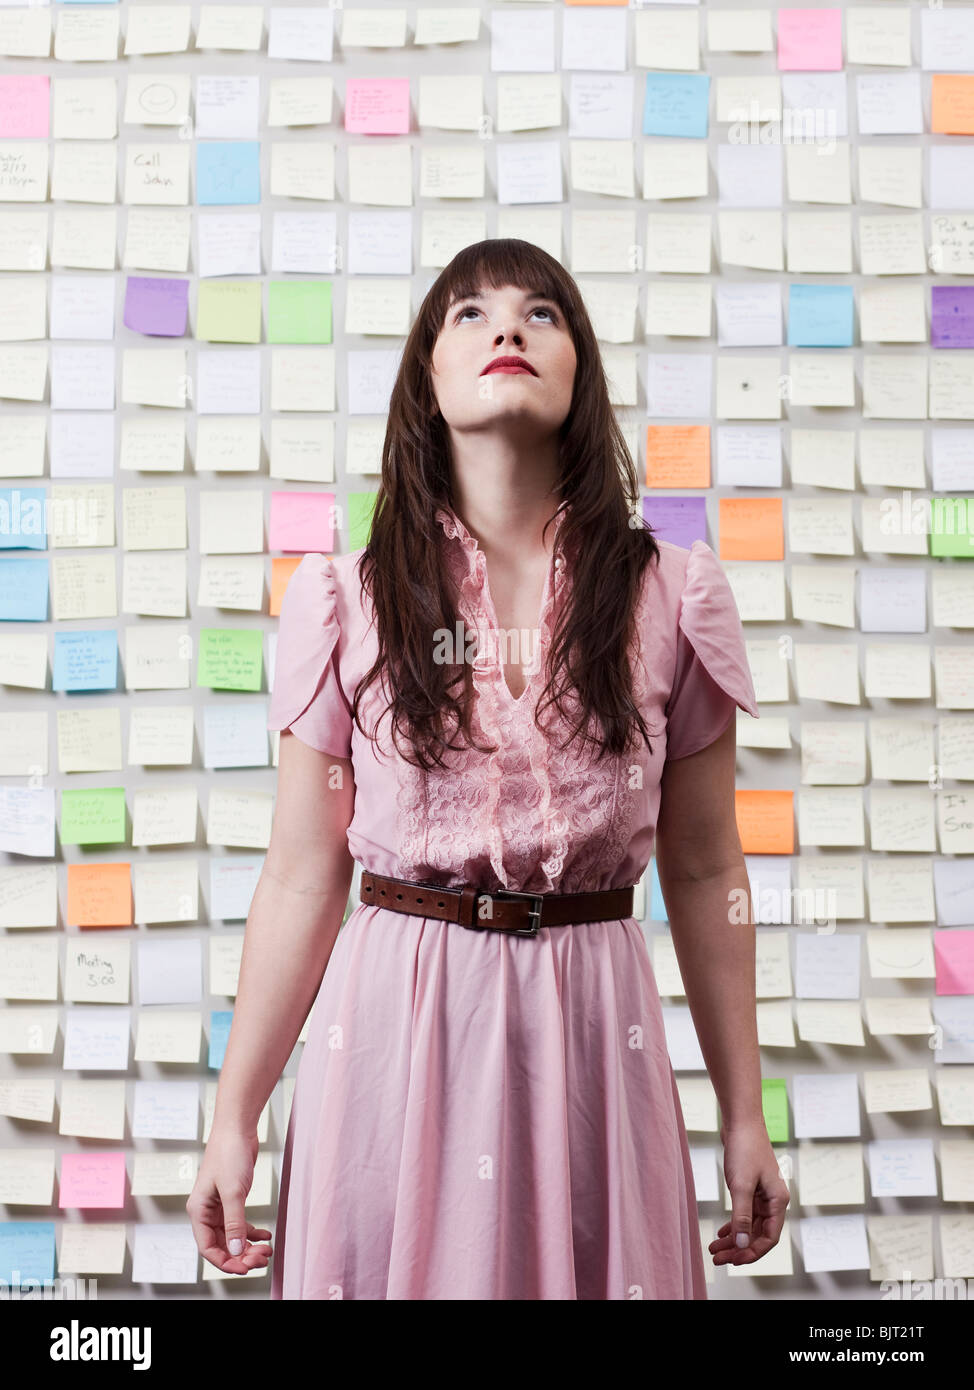 Portrait of woman in room with walls covered with adhesive notes - Stock Image